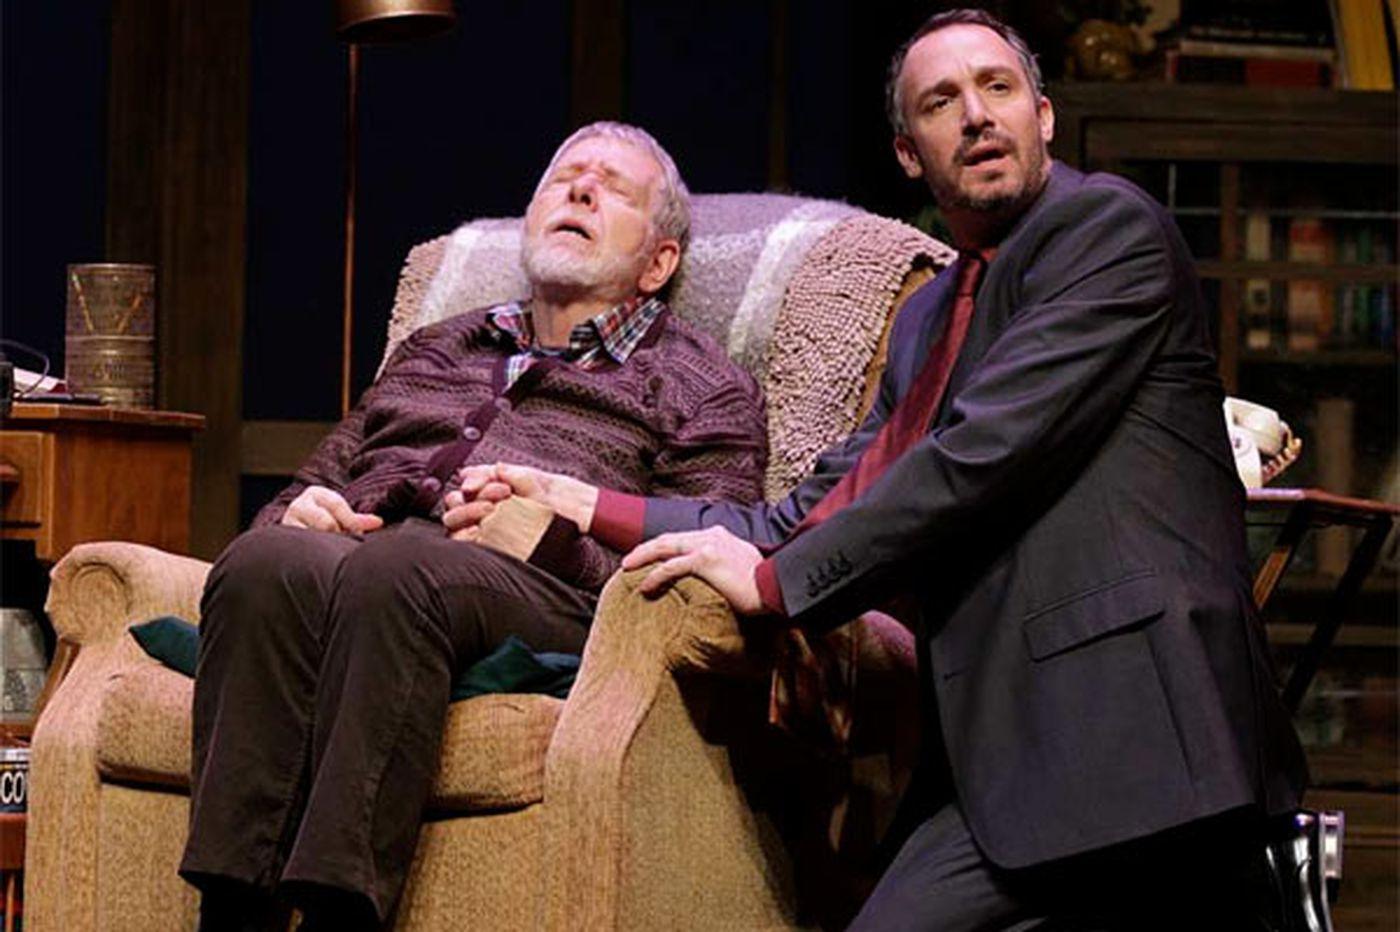 'Tuesdays With Morrie' at Bristol Riverside: Morrie's much too merry